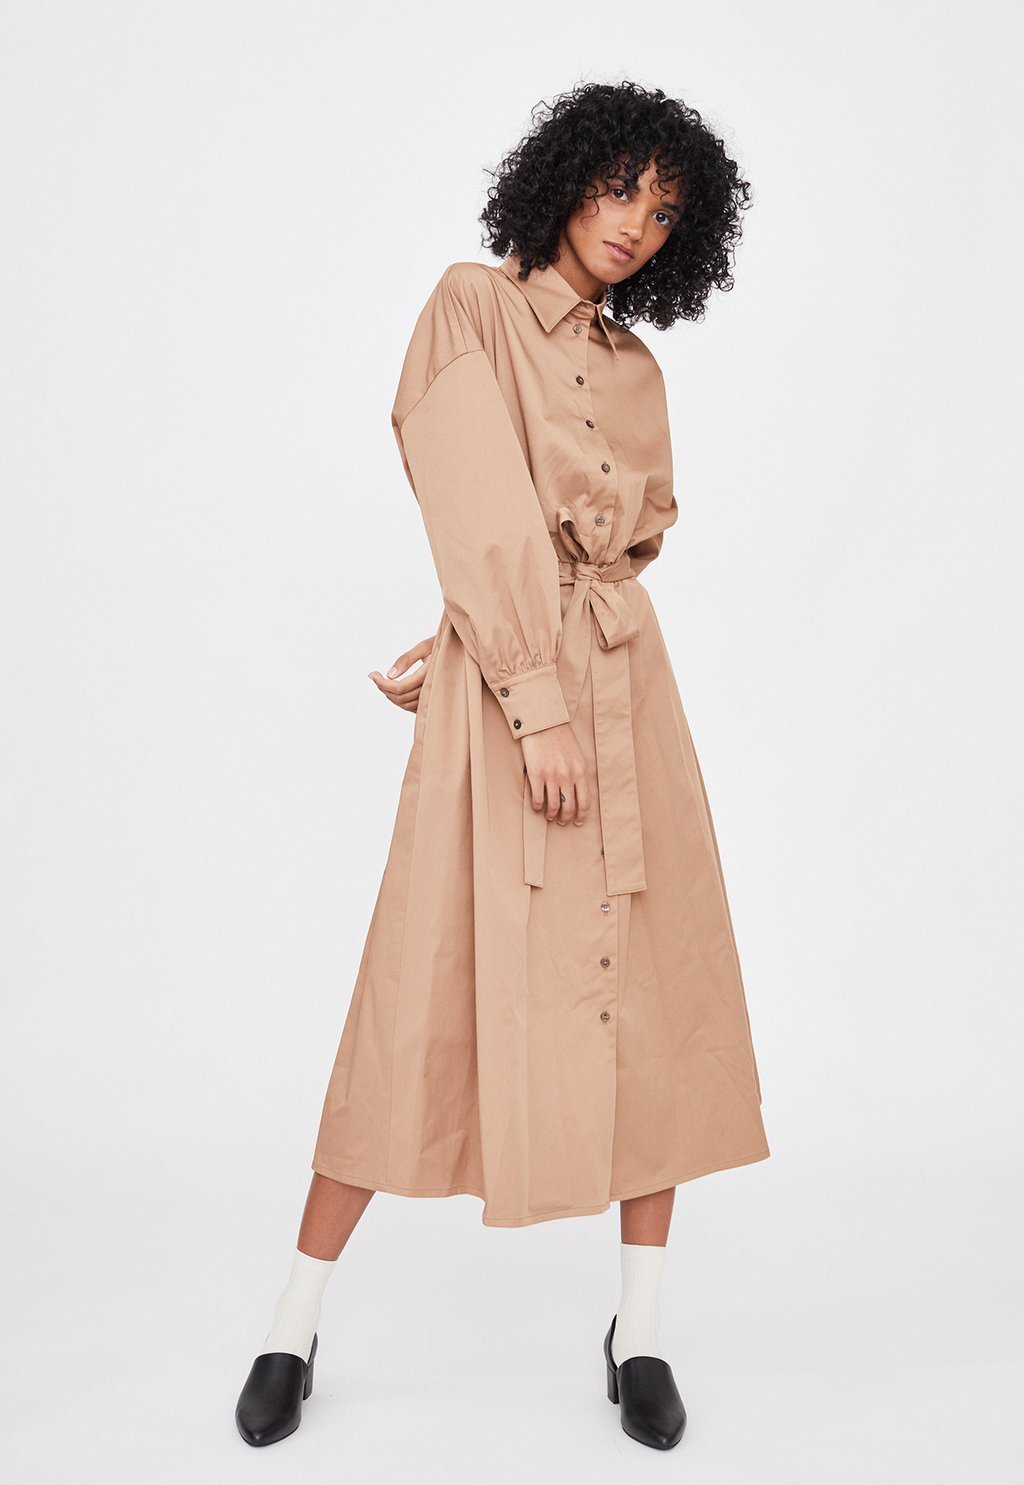 Classic Collar Tie Waist Dress Beige, dress, Rita Row, - nois